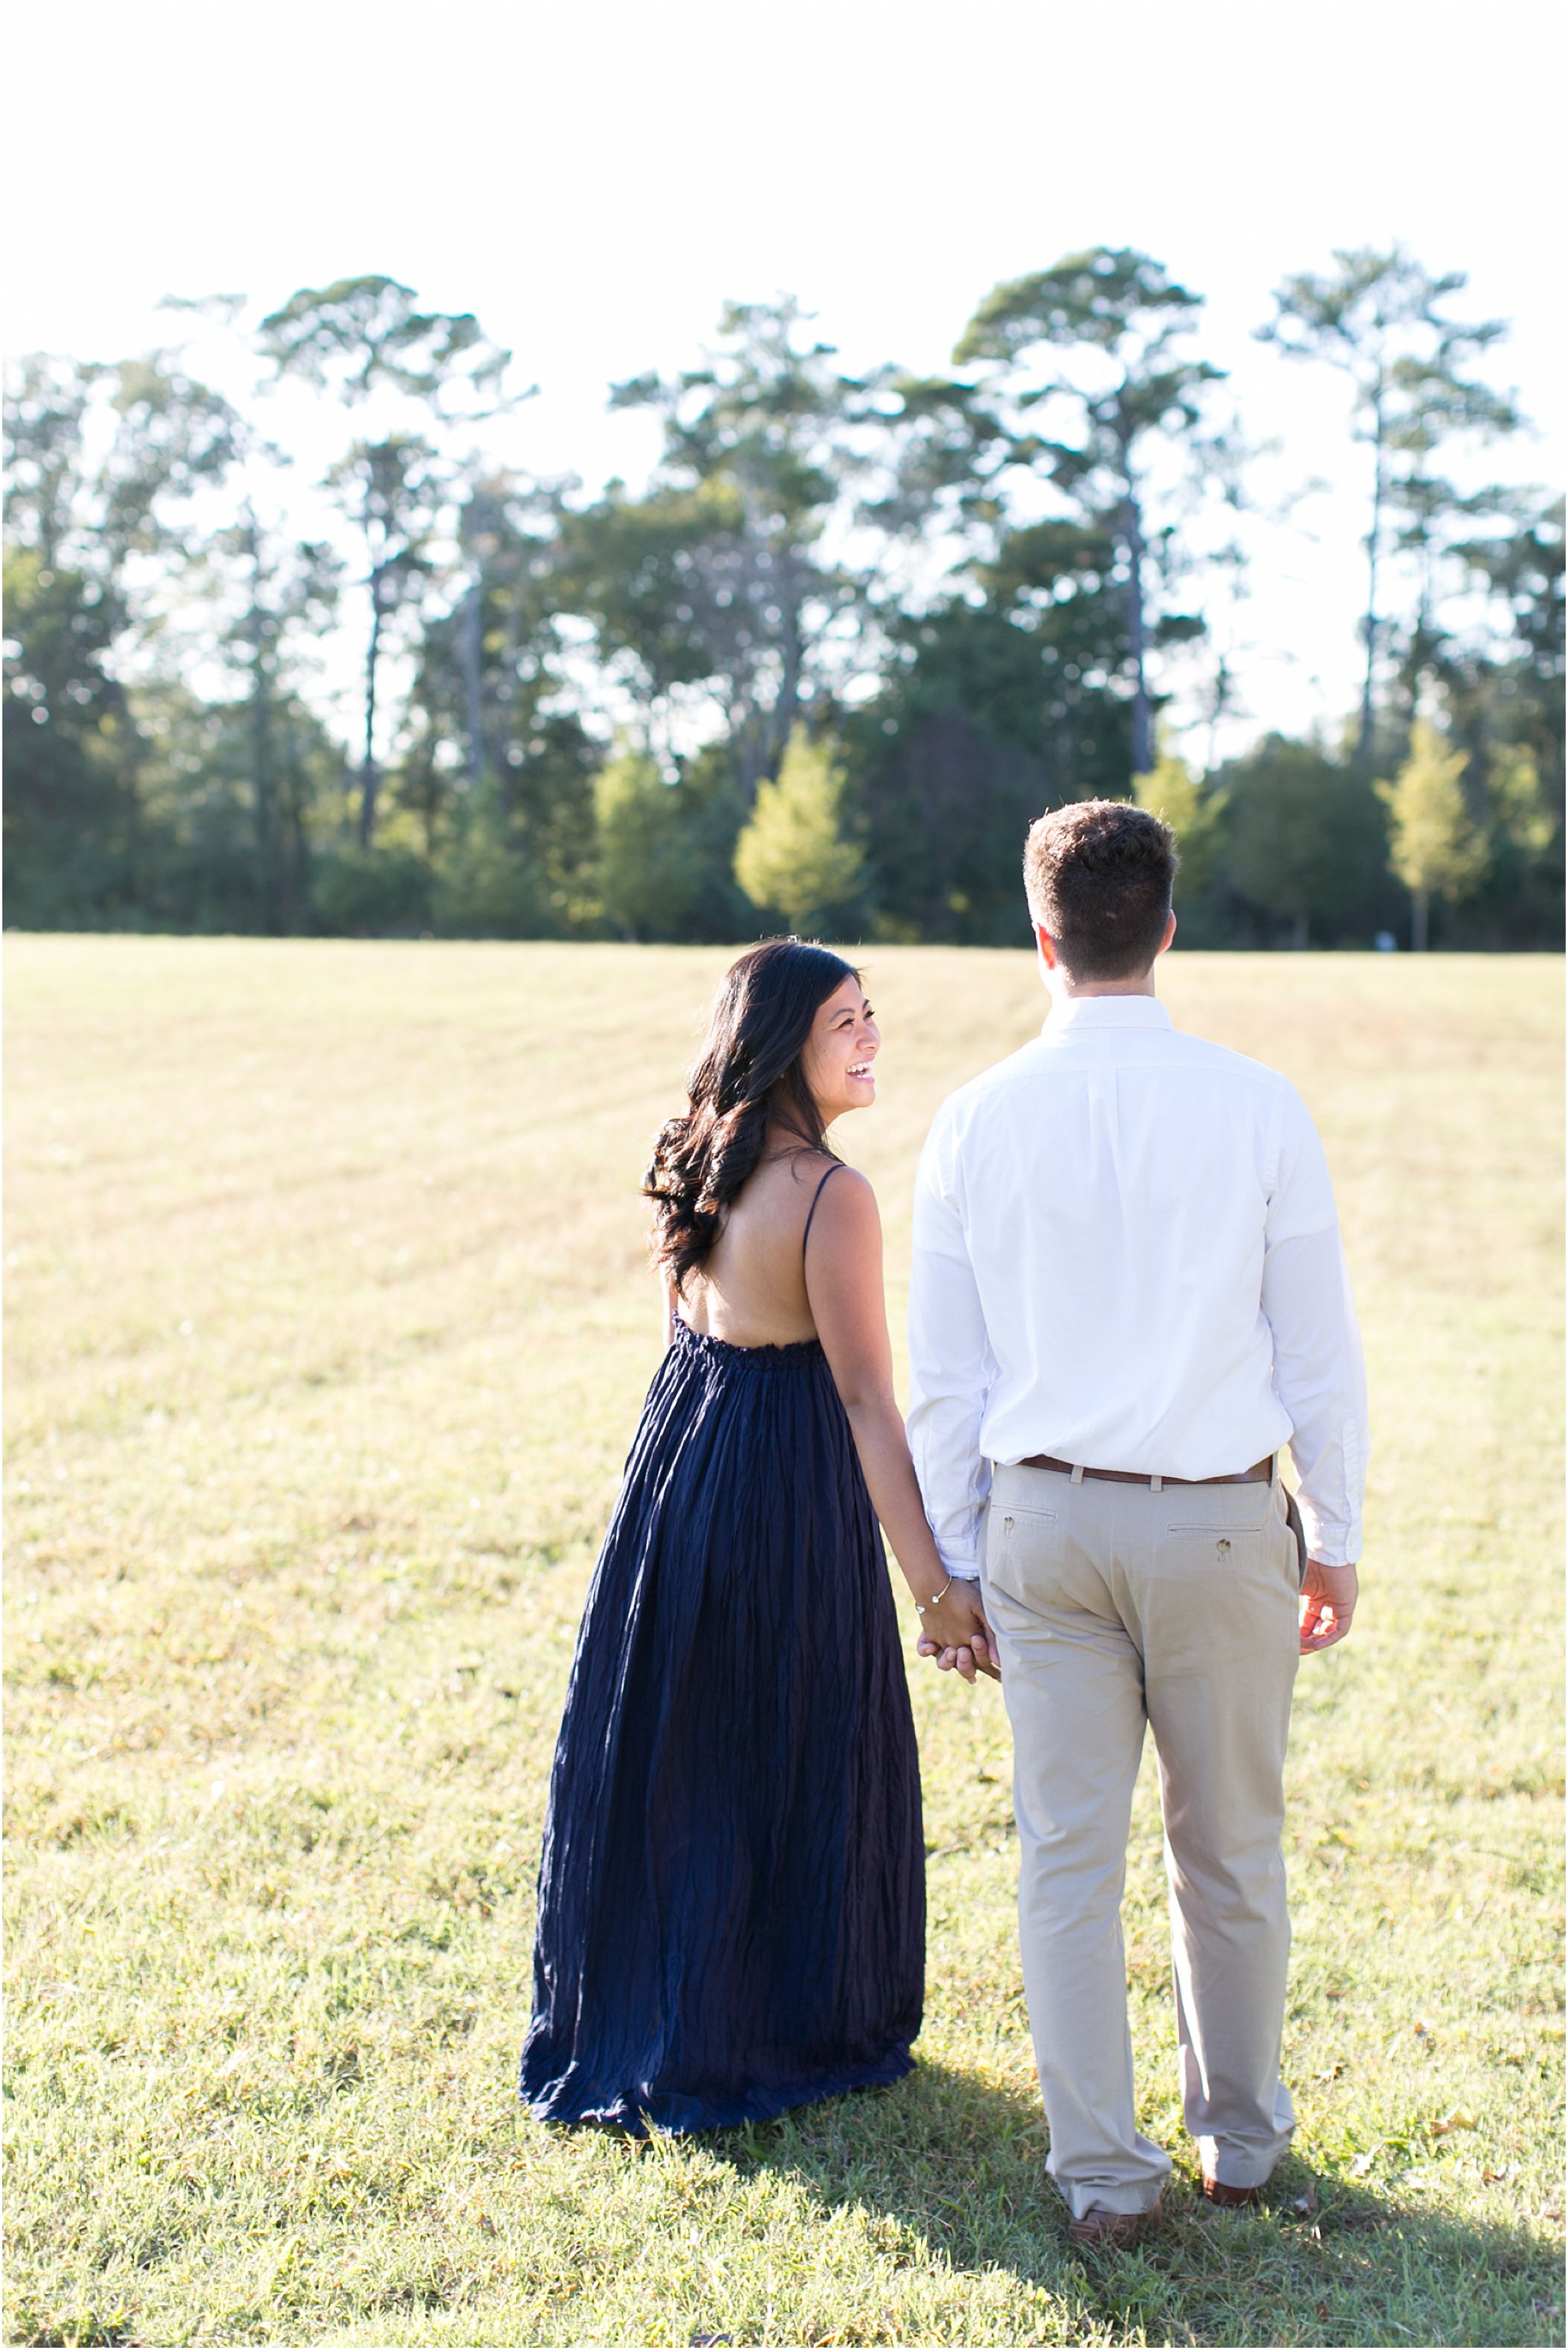 jessica_ryan_photography_virginia_smithfield_historical_downtown_engagement_portraits_candid_authentic_3720